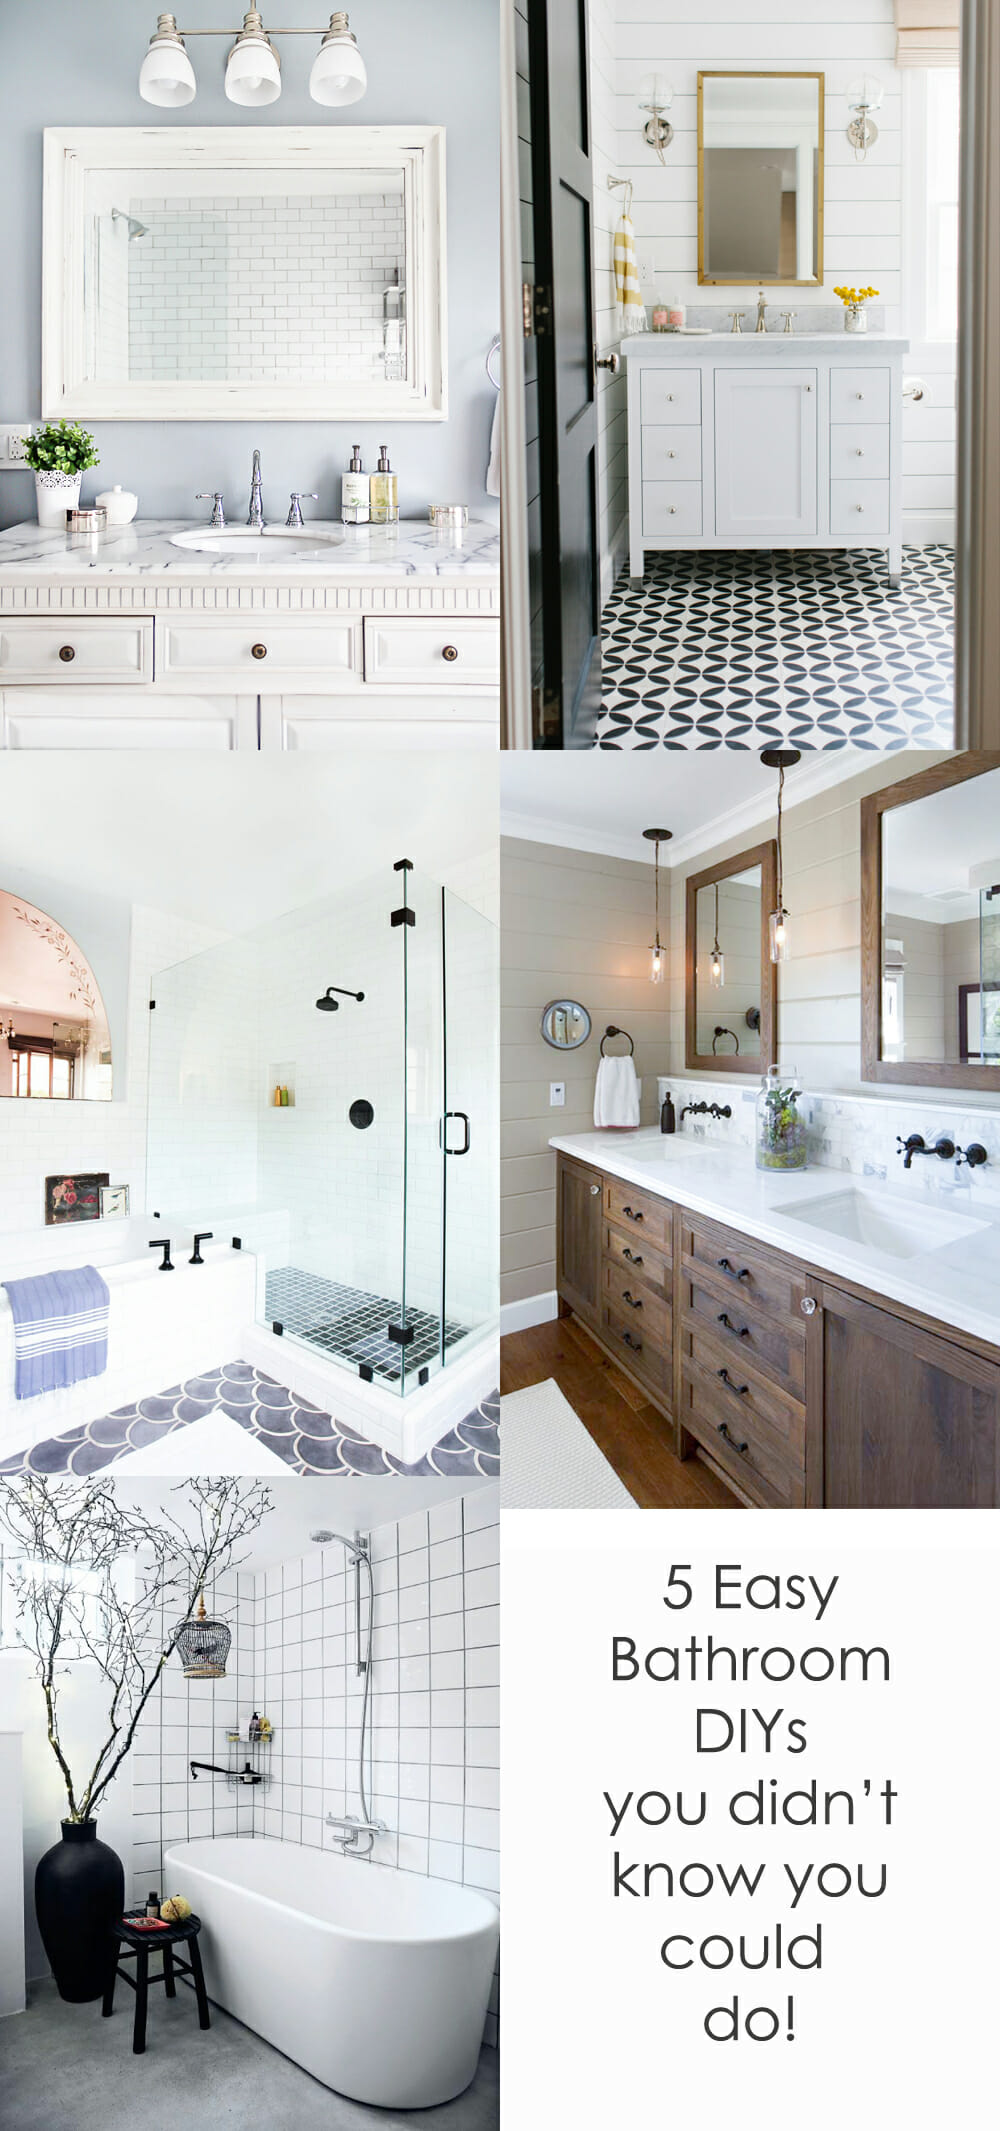 5 Easy DIY Bathroom Upgrades That Will Surprise You - Modernize